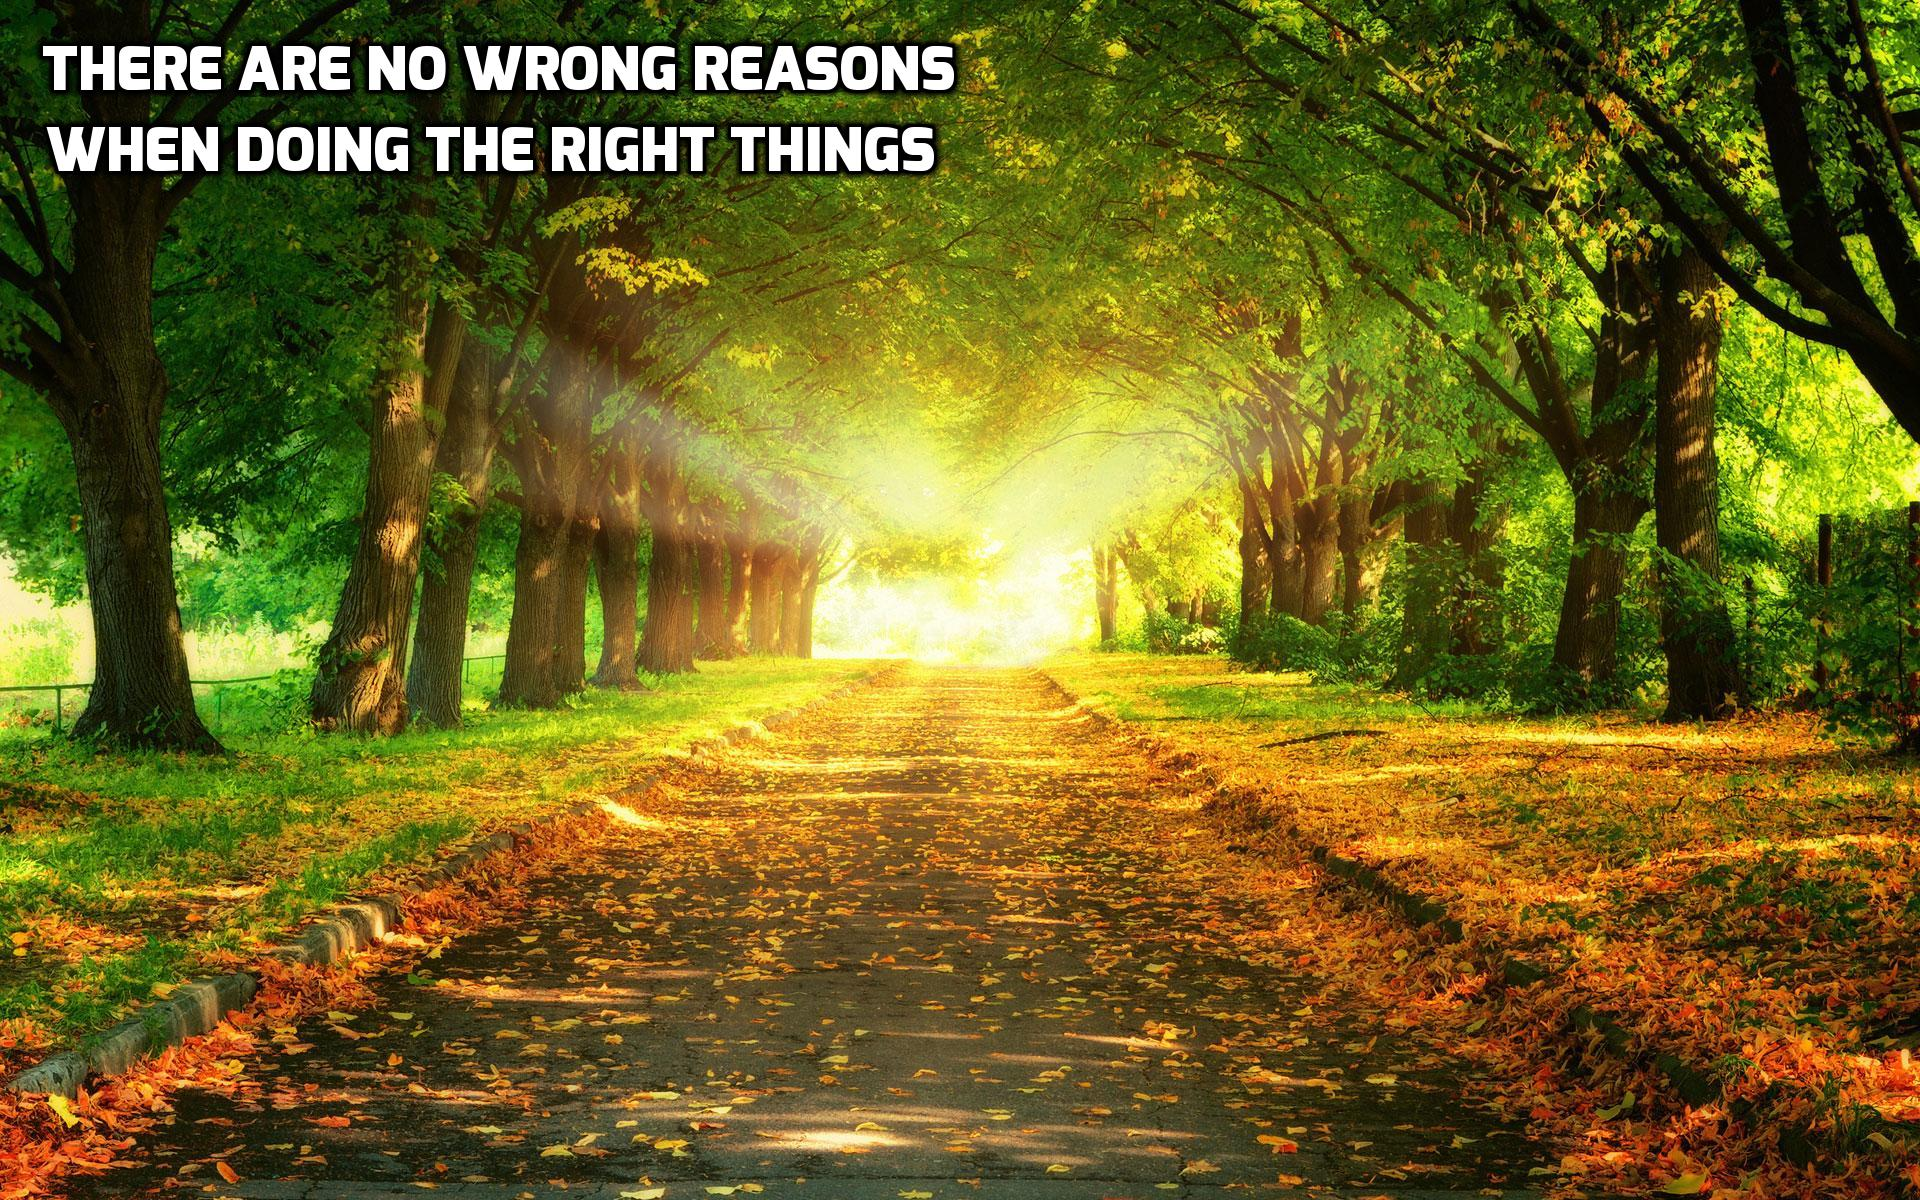 There are no wrong reasons when doing the right things